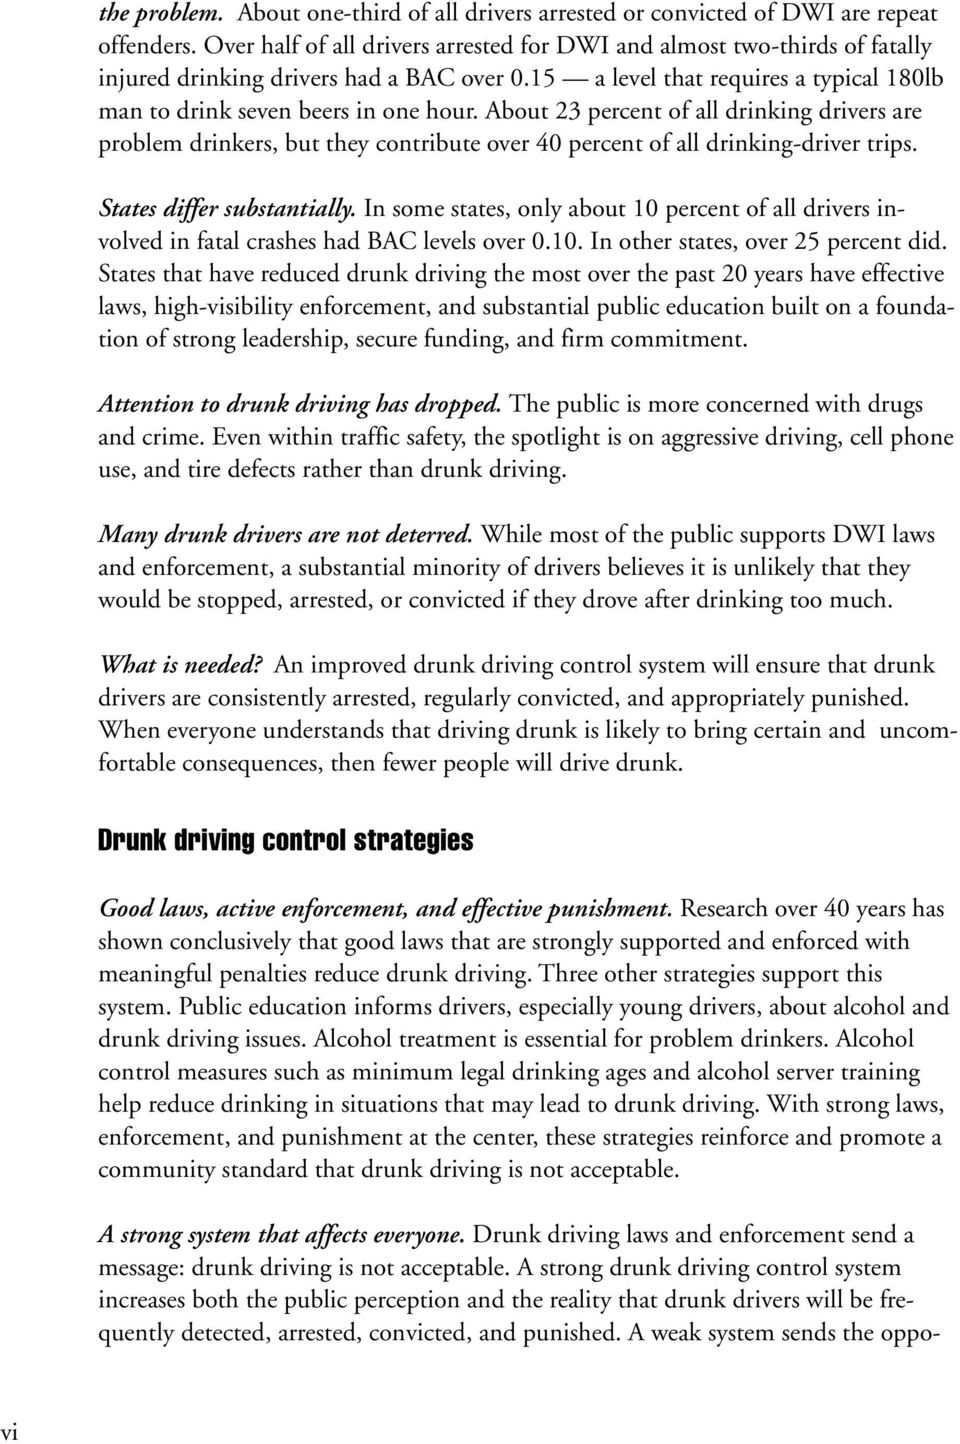 About 23 percent of all drinking drivers are problem drinkers, but they contribute over 40 percent of all drinking-driver trips. States differ substantially.